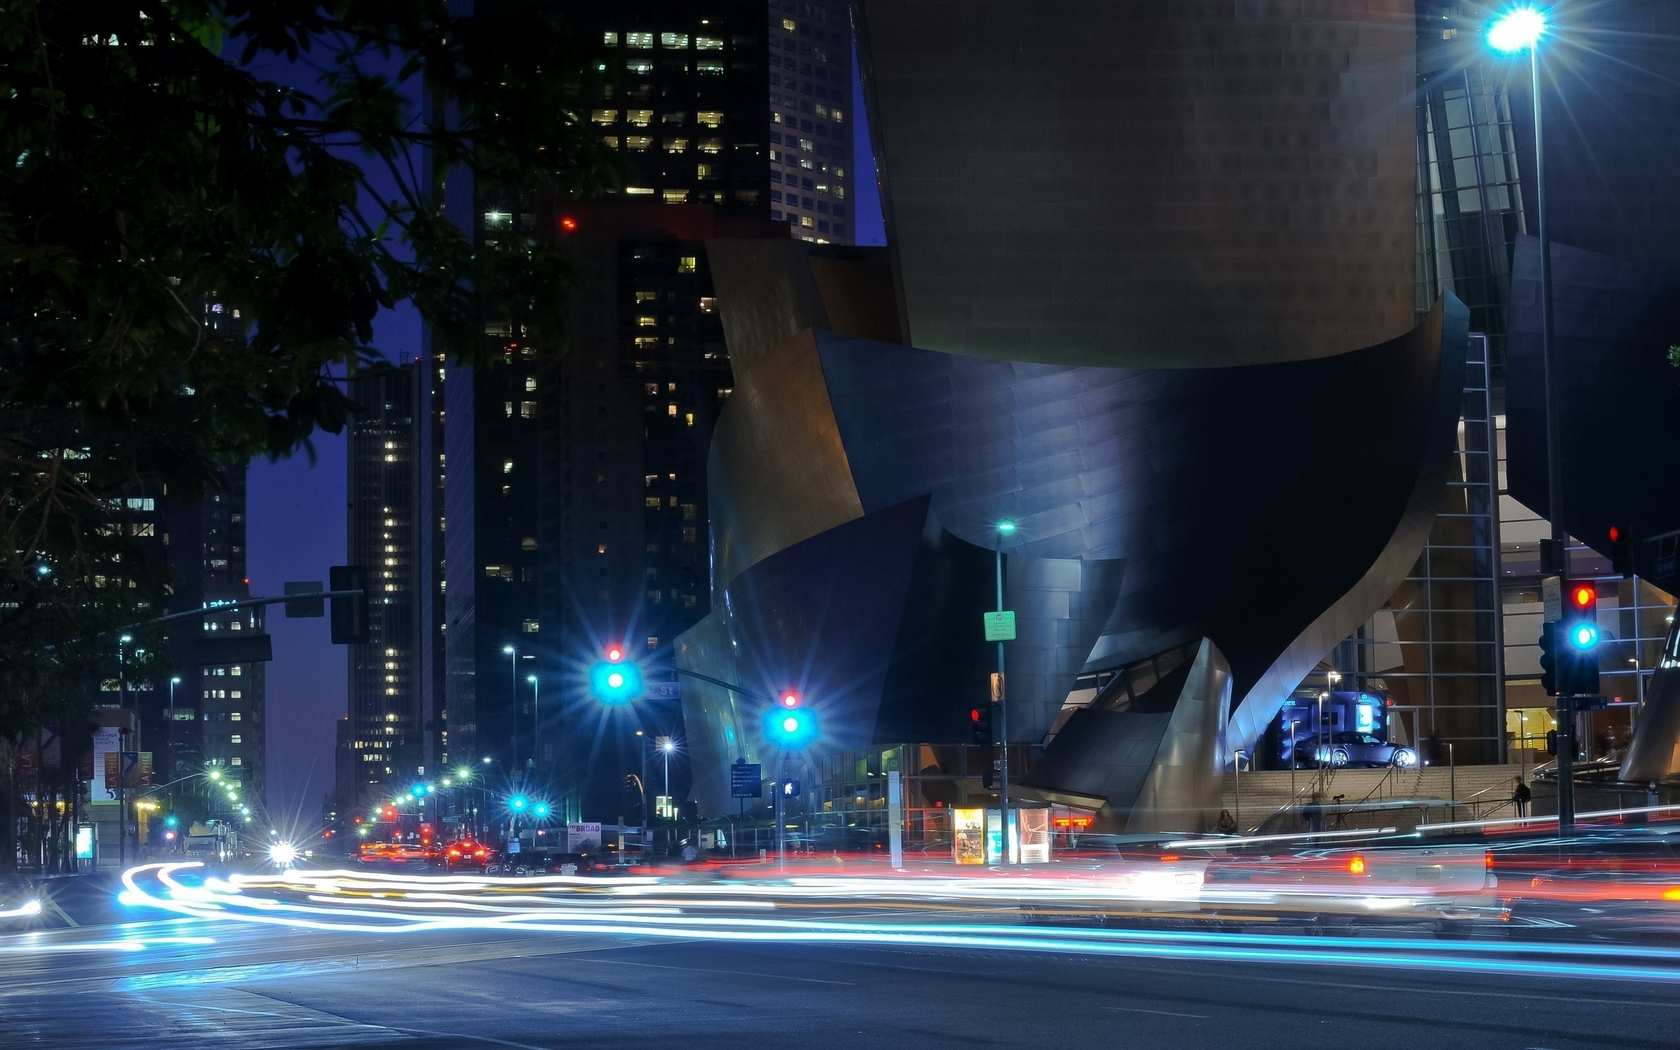 огни, california, walt disney concert hall, night, traffic, ночь, калифорния, los angeles, usa